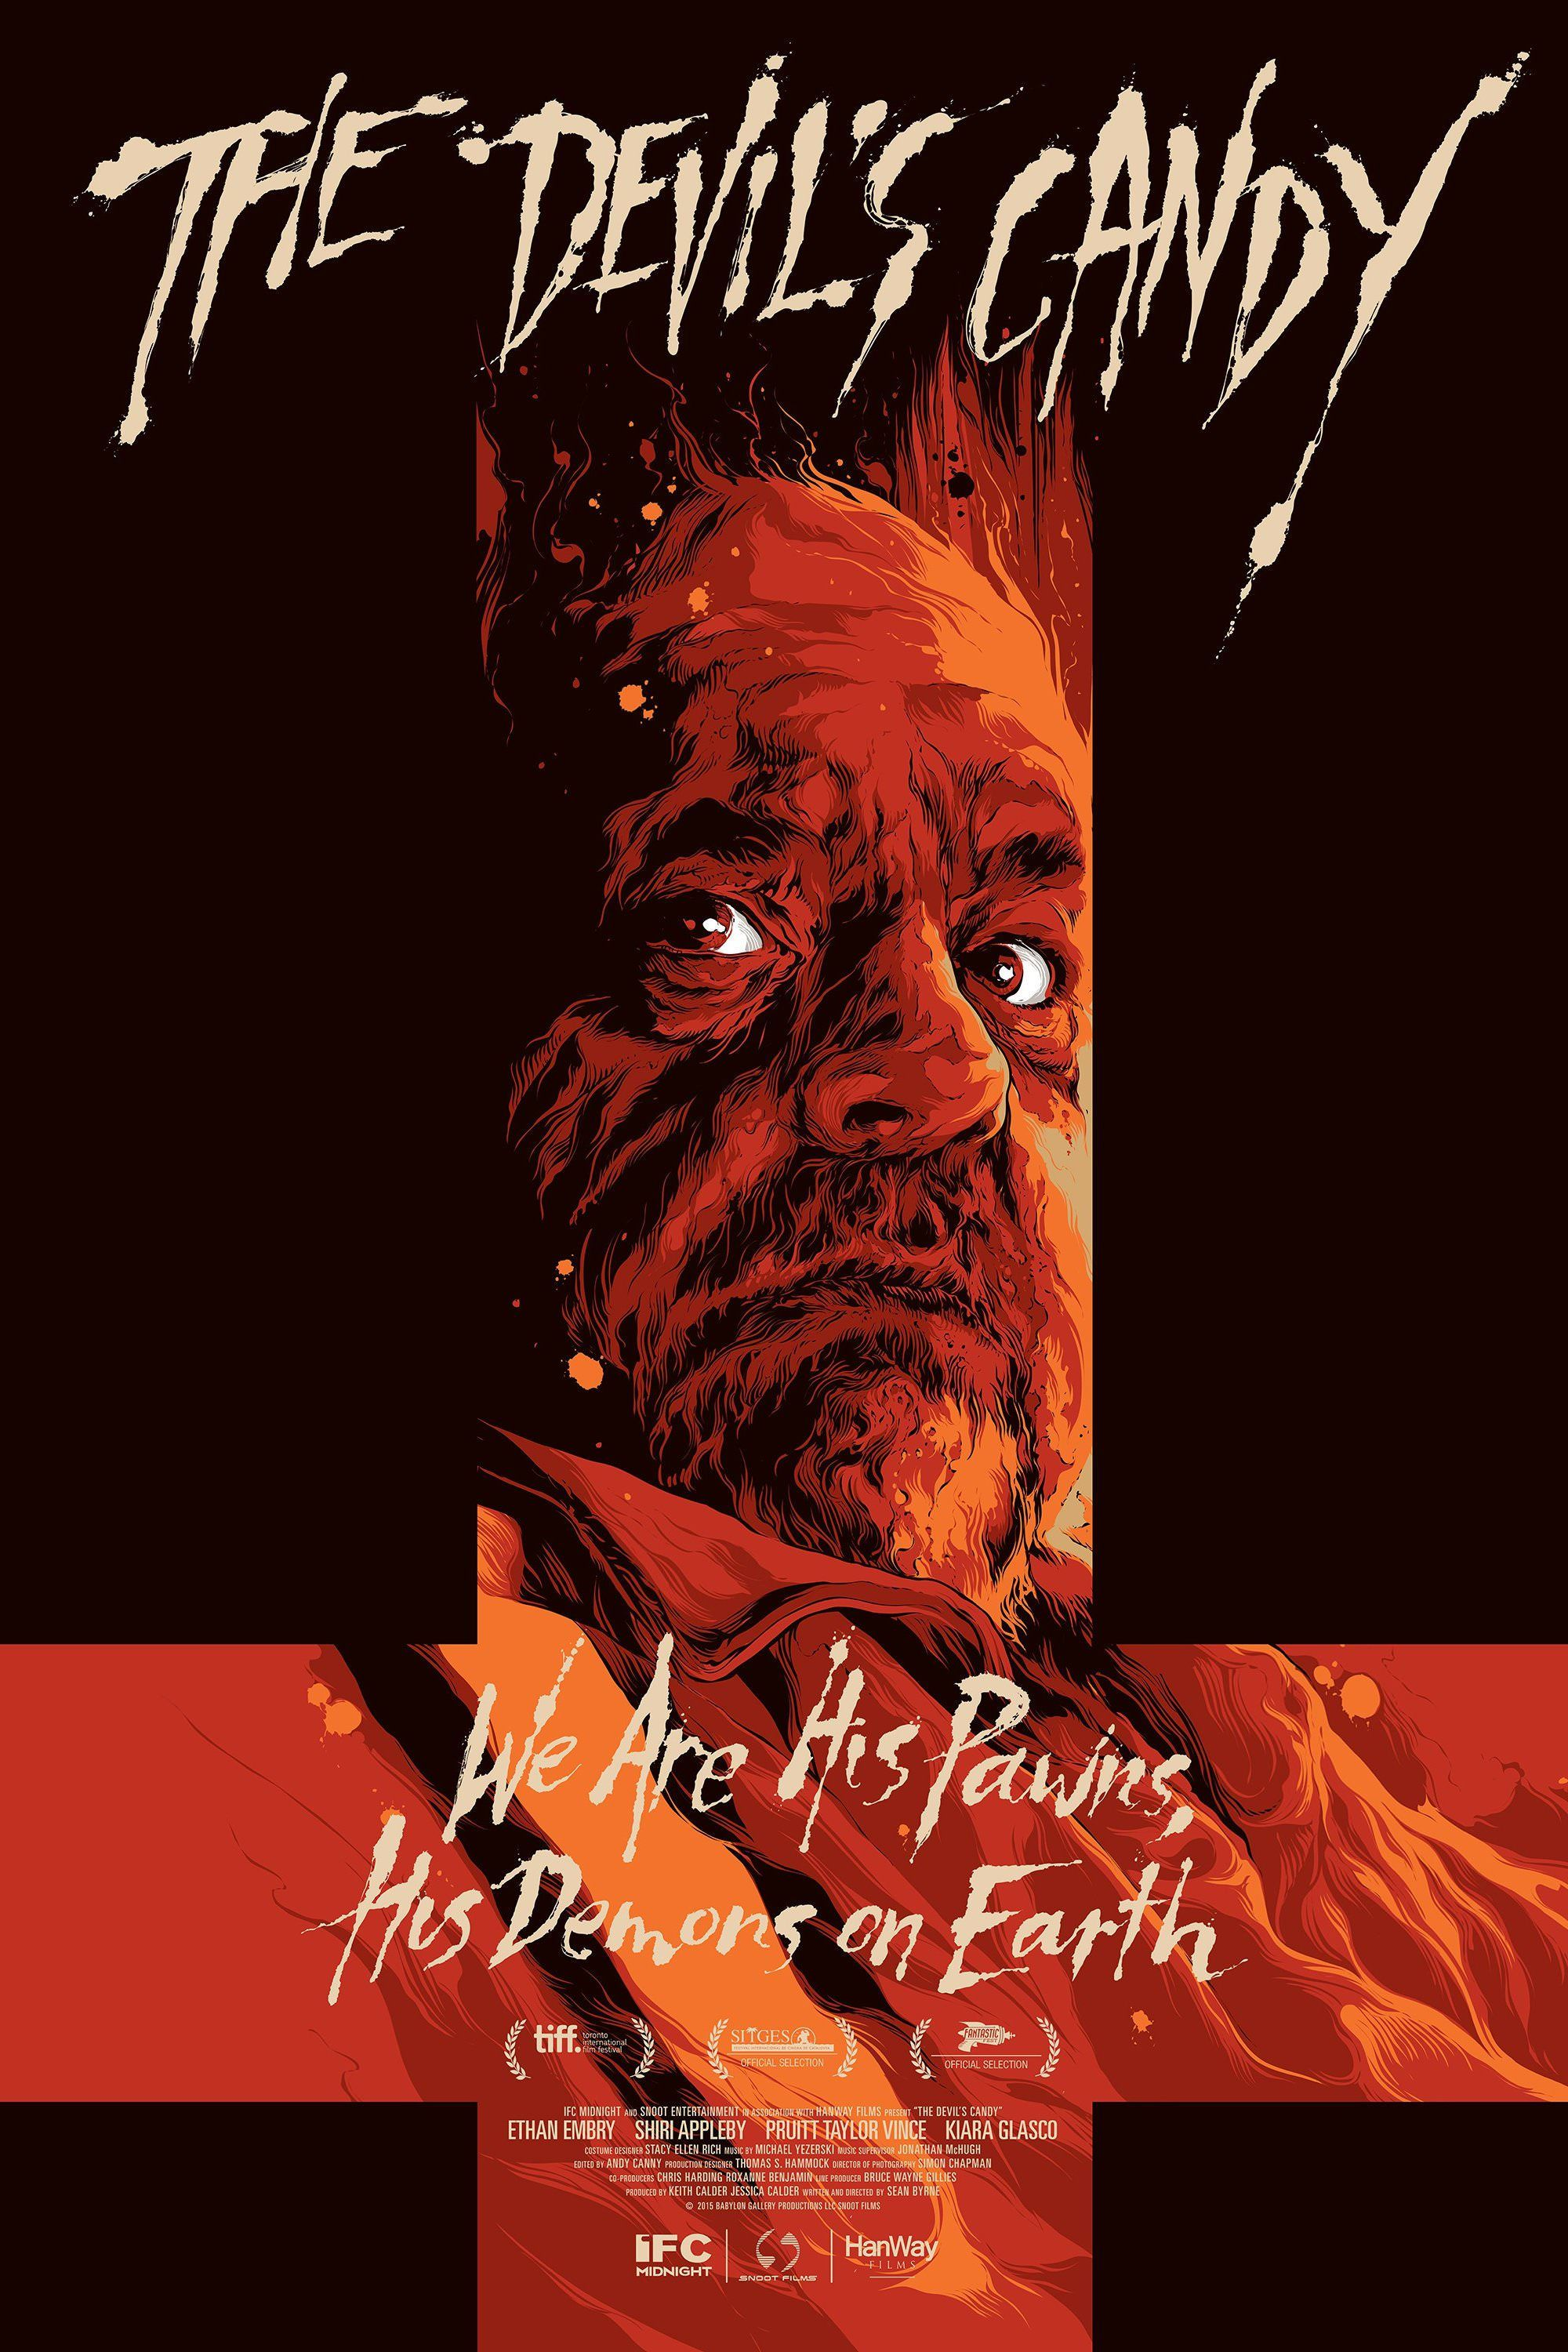 Pin on The Art of the Movies